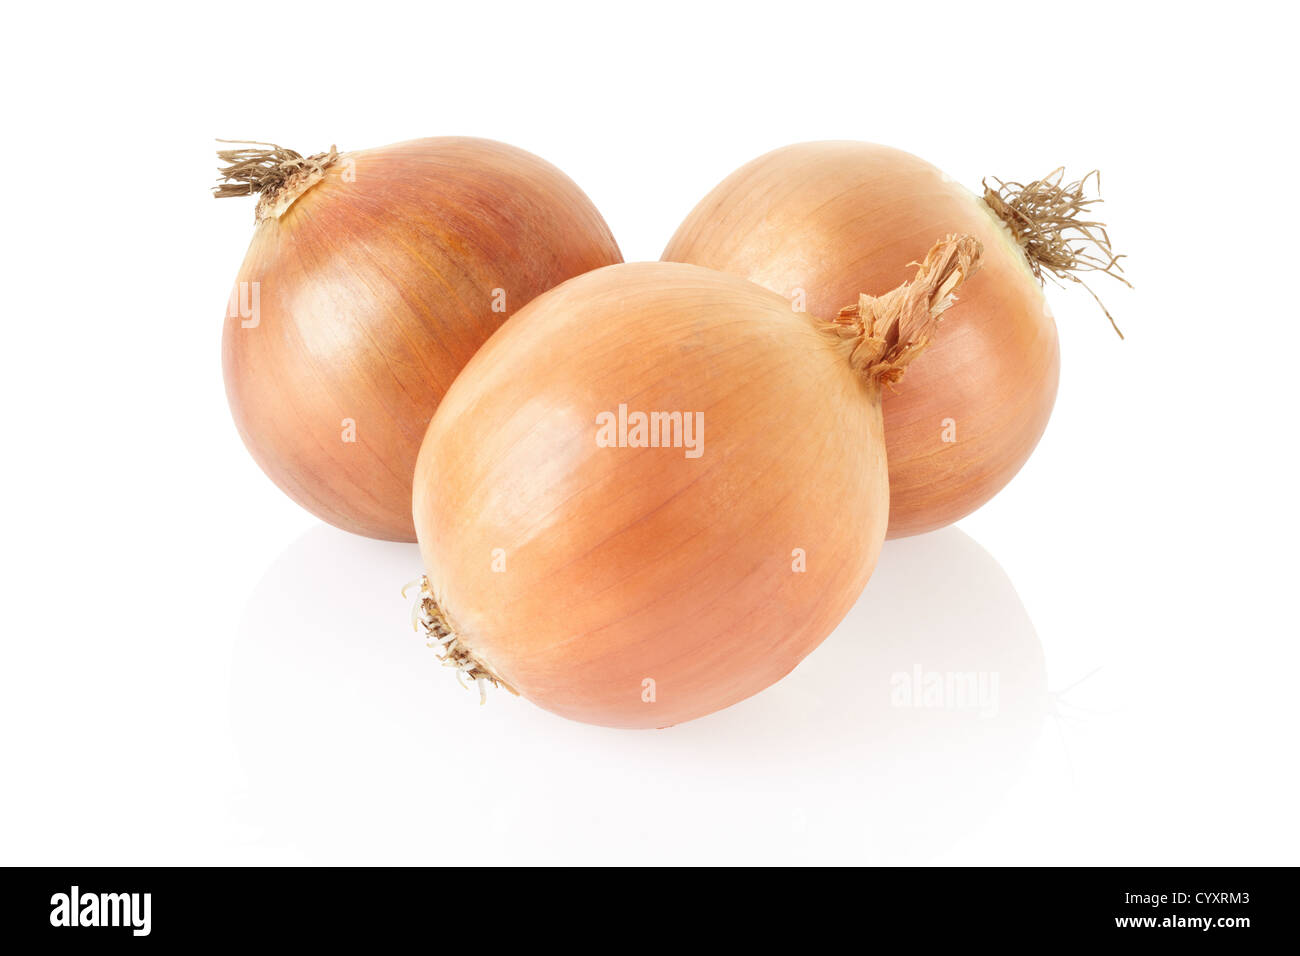 Onion group isolated on white, clipping path included - Stock Image